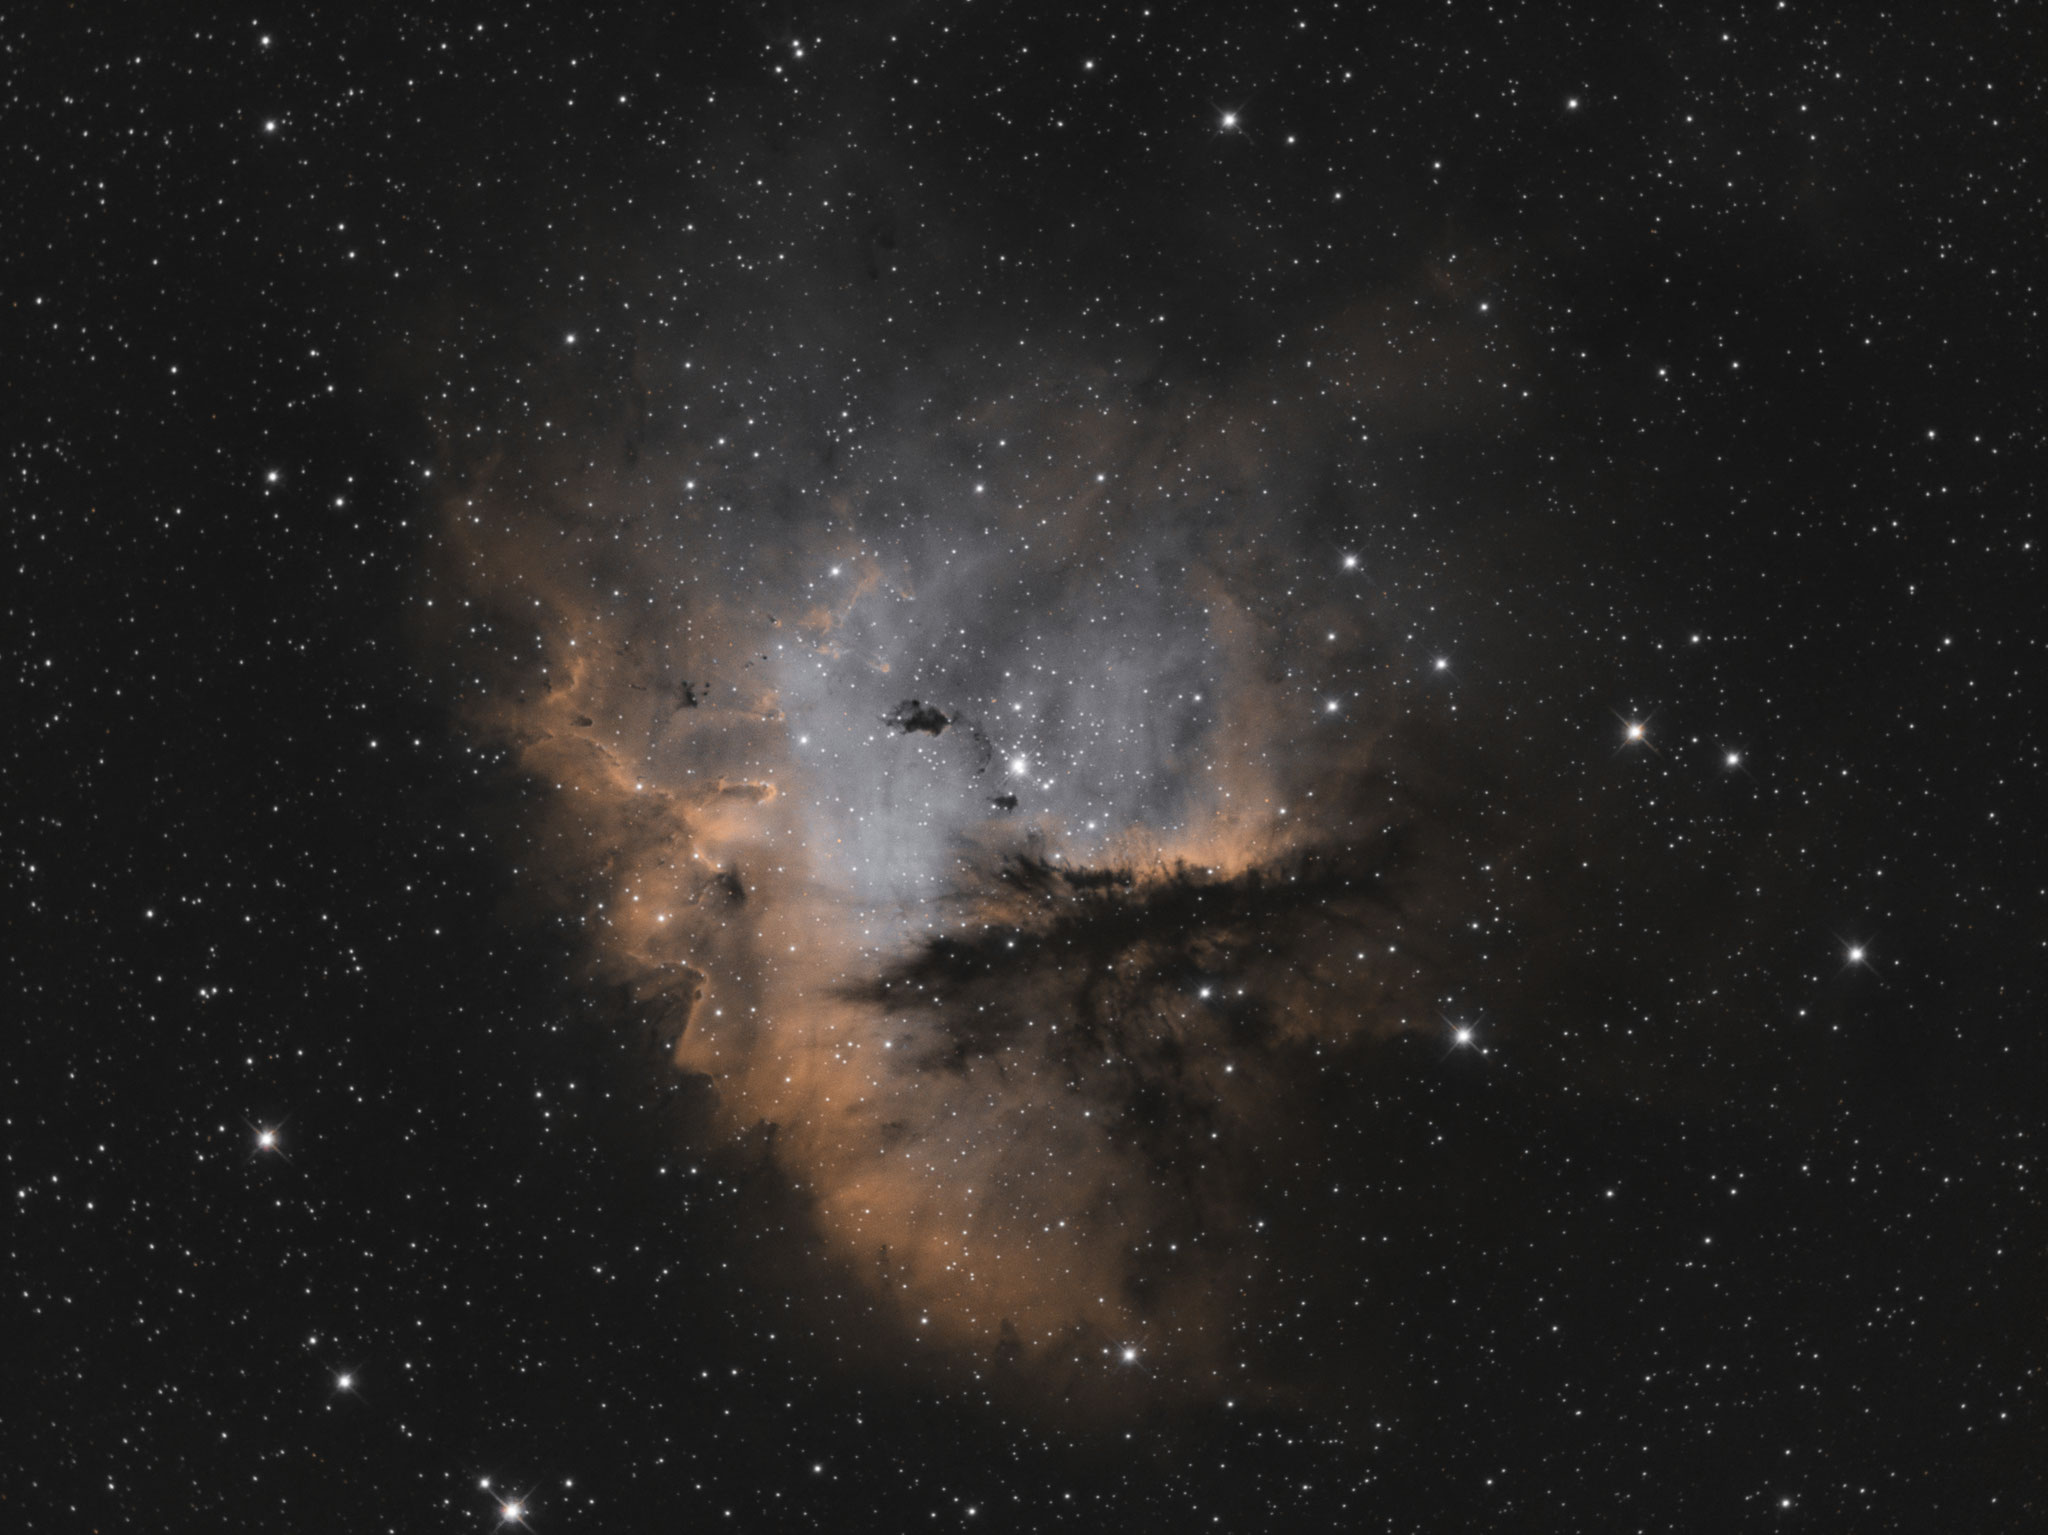 """NGC 281, TS RC8"""", Astro Physics Reducer, ASI1600MMPro, Ha 135x180s, OIII 80x180s"""